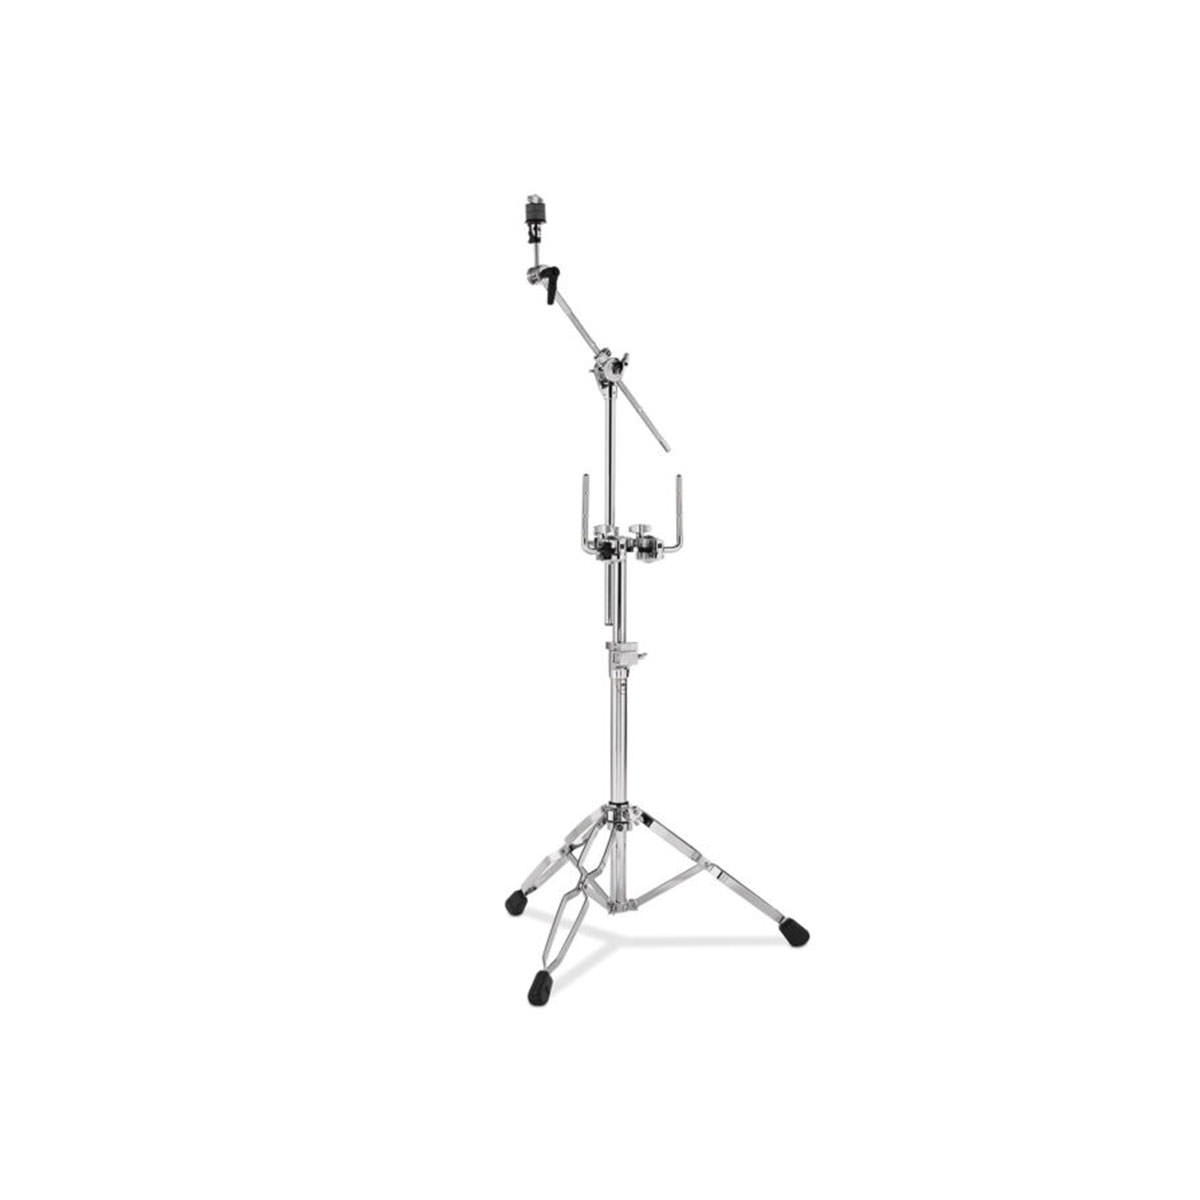 DW 9934 Heavy Duty Double-Braced Double Tom/Cymbal Stand